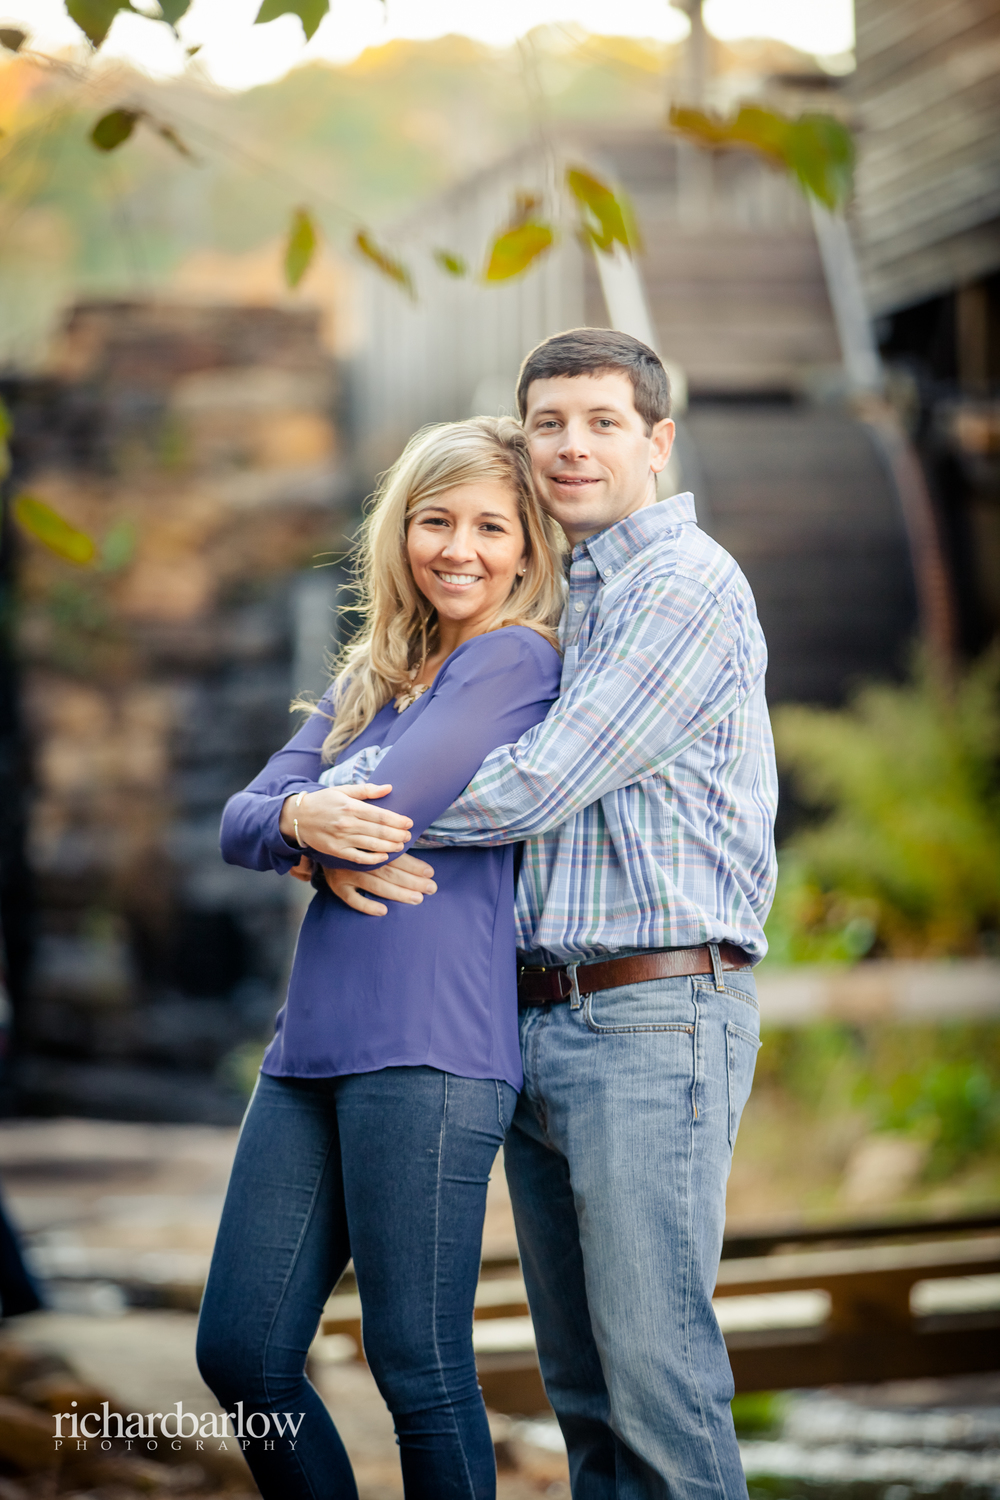 richard barlow photography - Garrett and Heather Engagement Session Raleigh-14.jpg